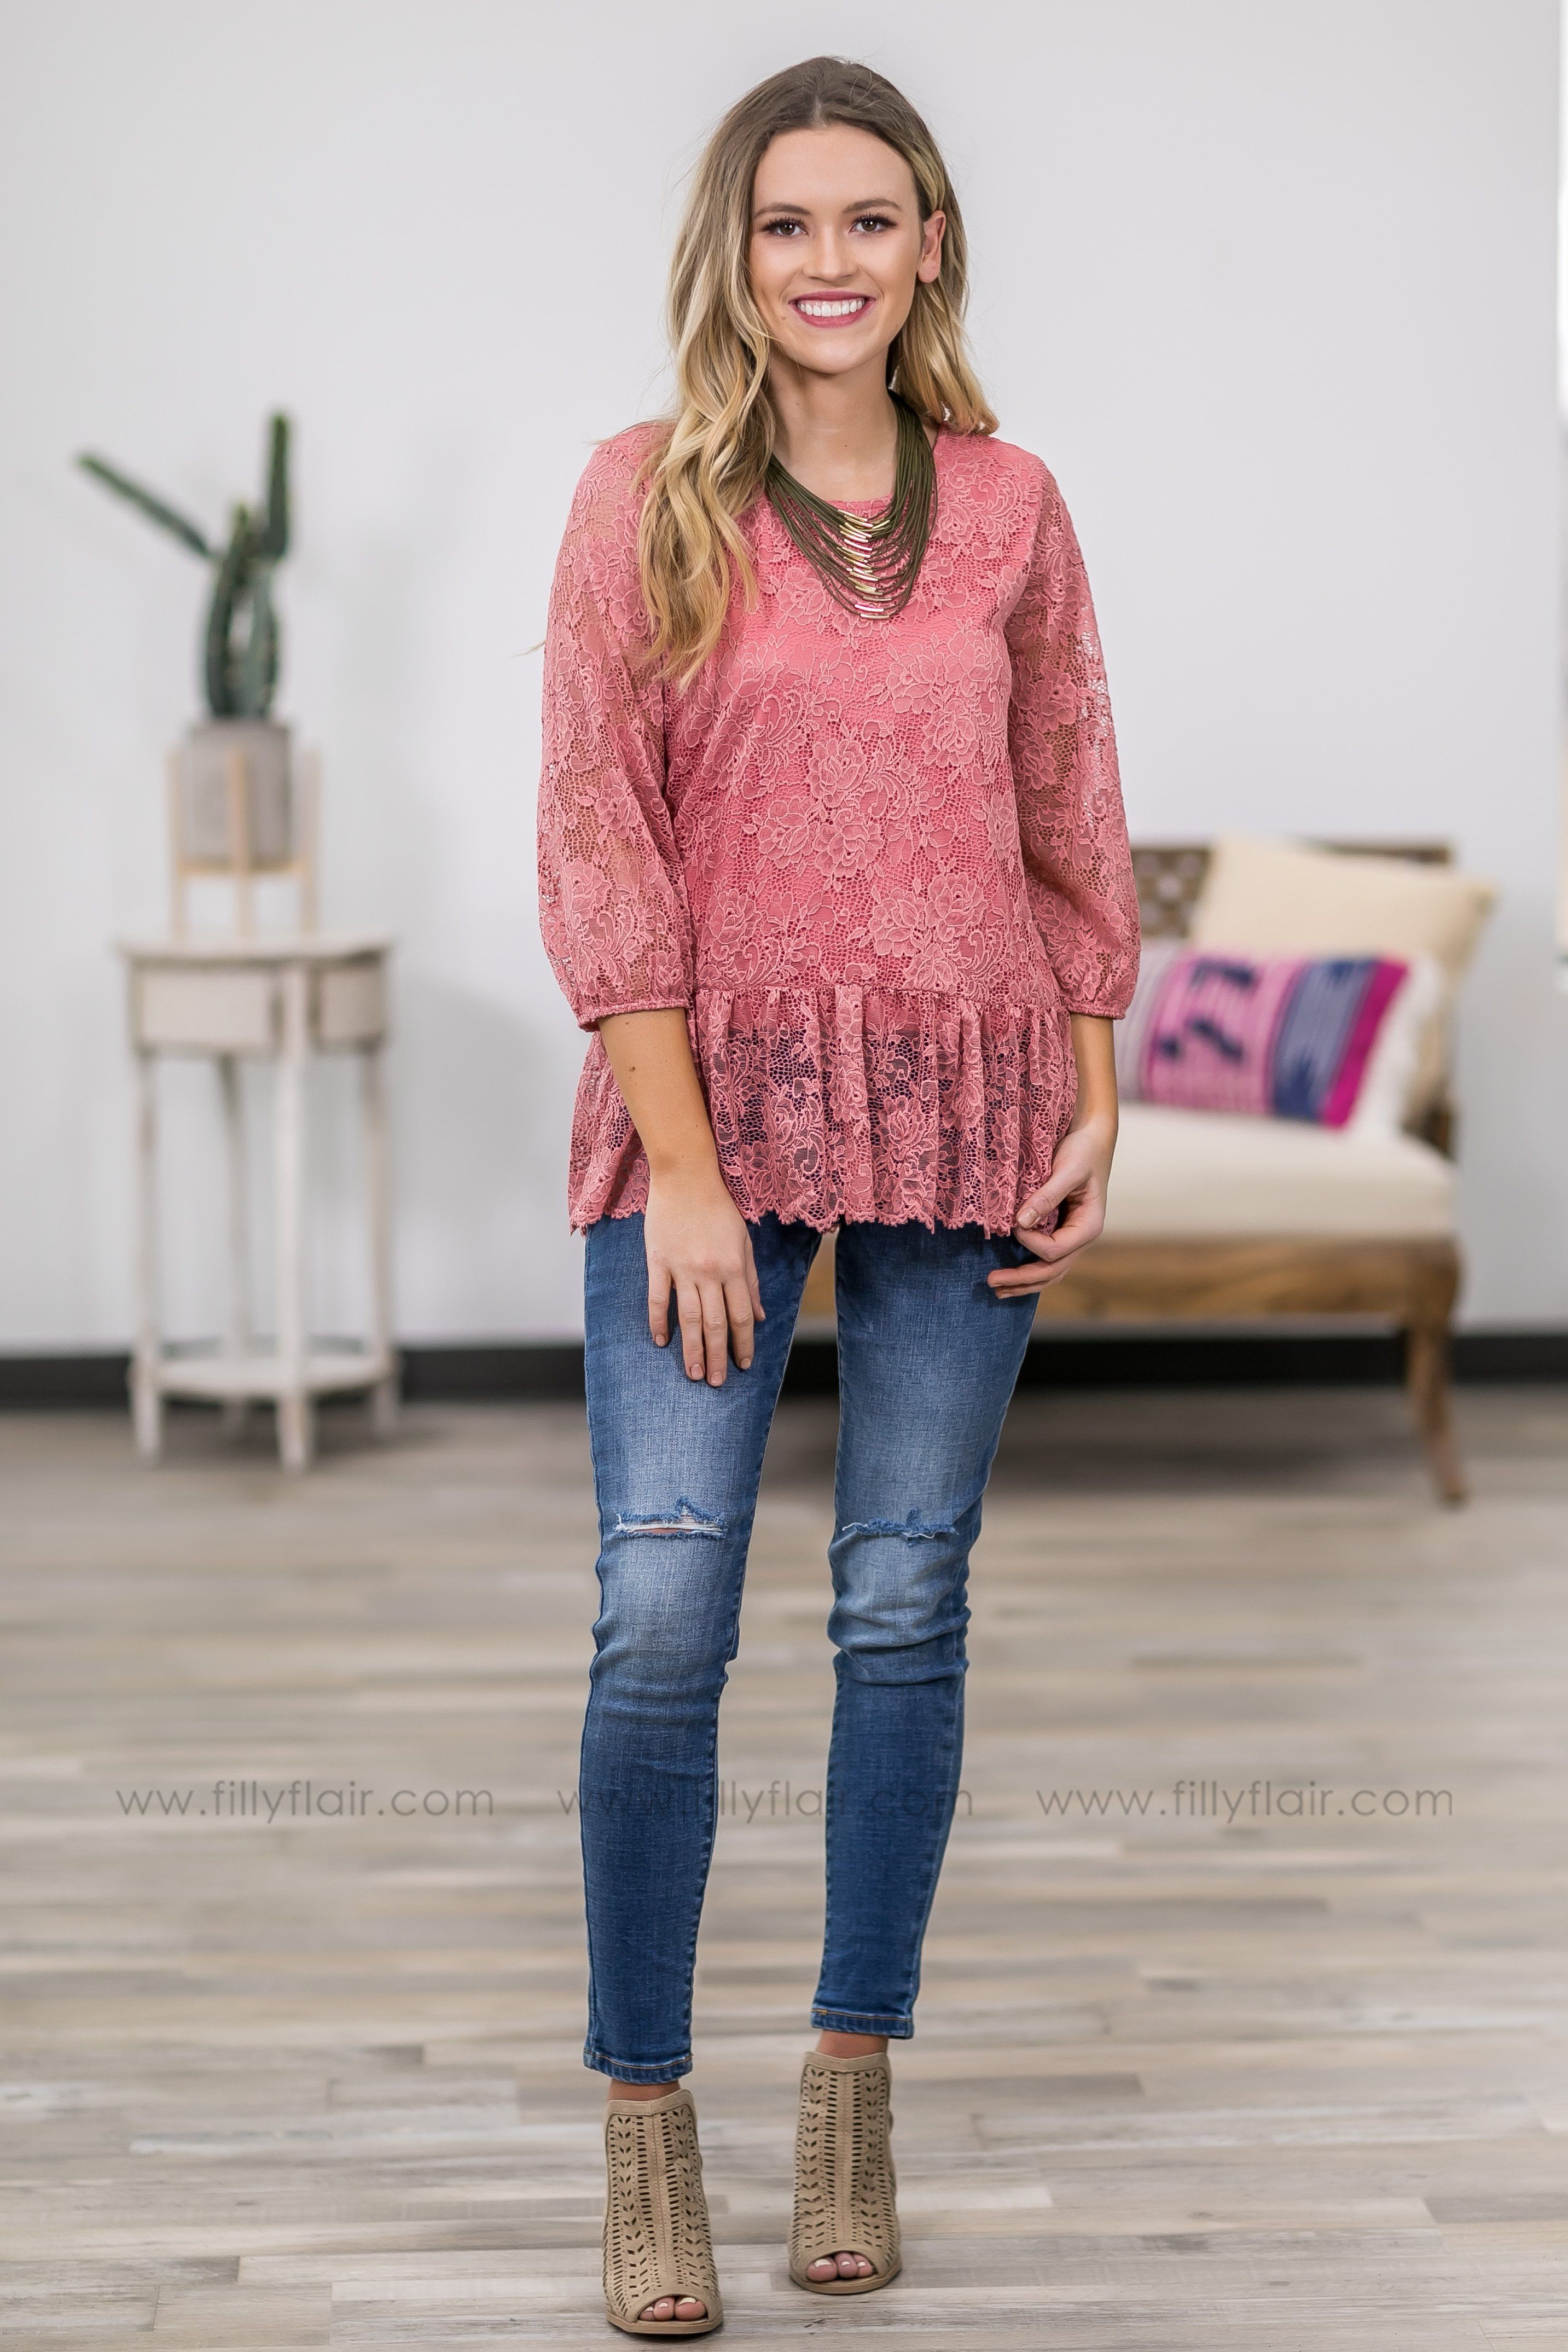 The Way I Am 3/4 Sleeve Floral Lace Ruffle Hem Top in Mauve - Filly Flair